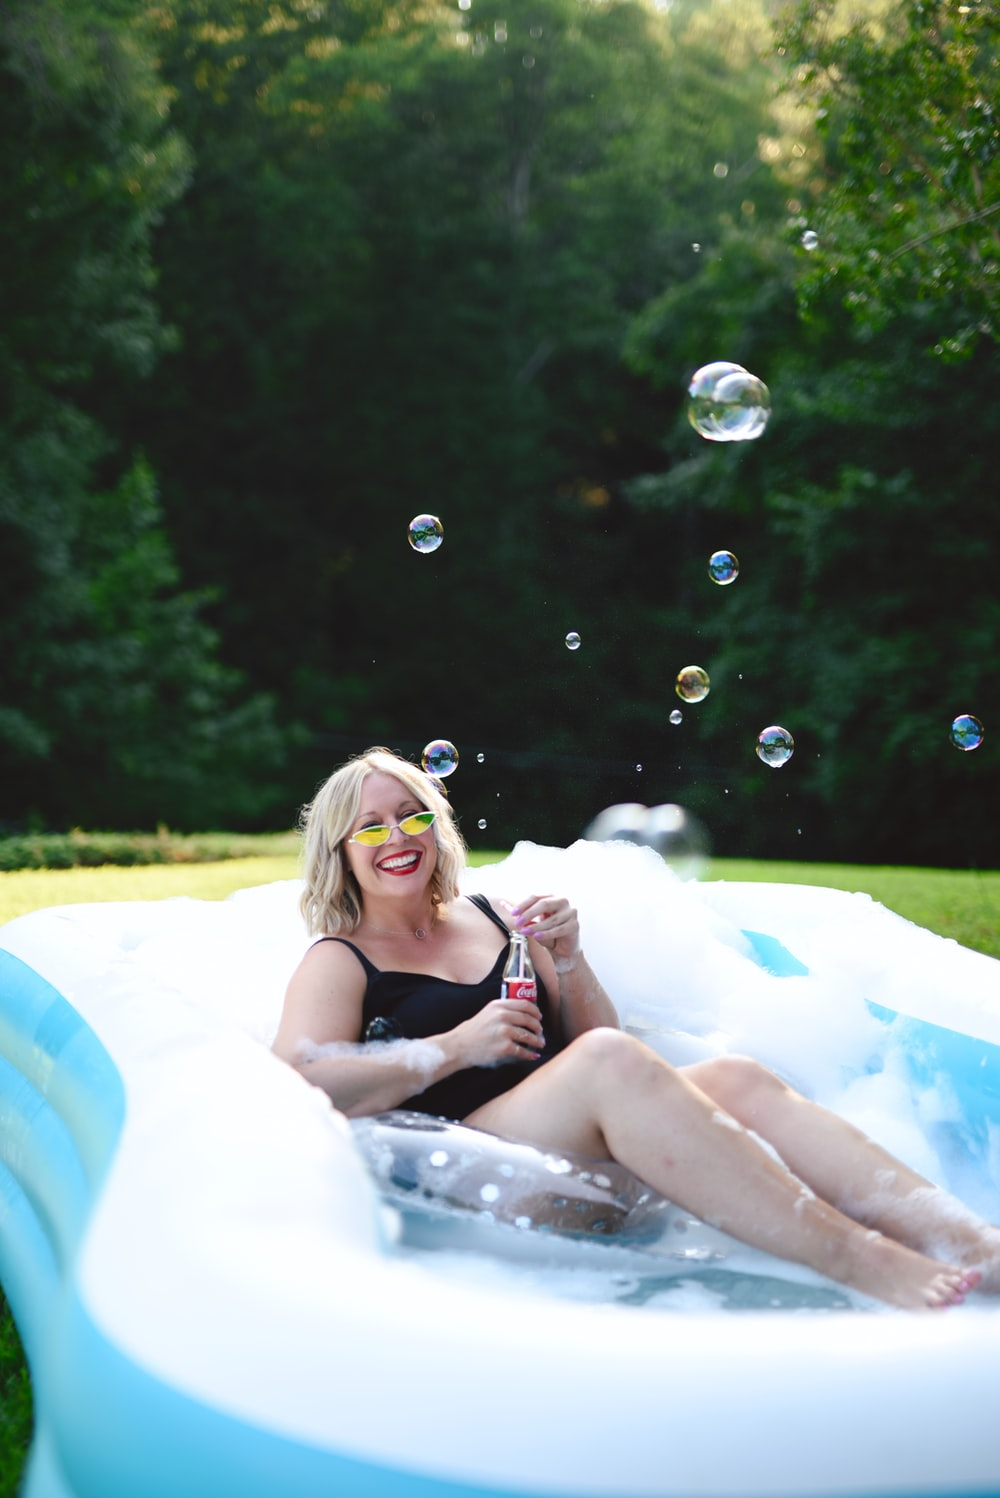 woman in black tank top lying on blue inflatable ring